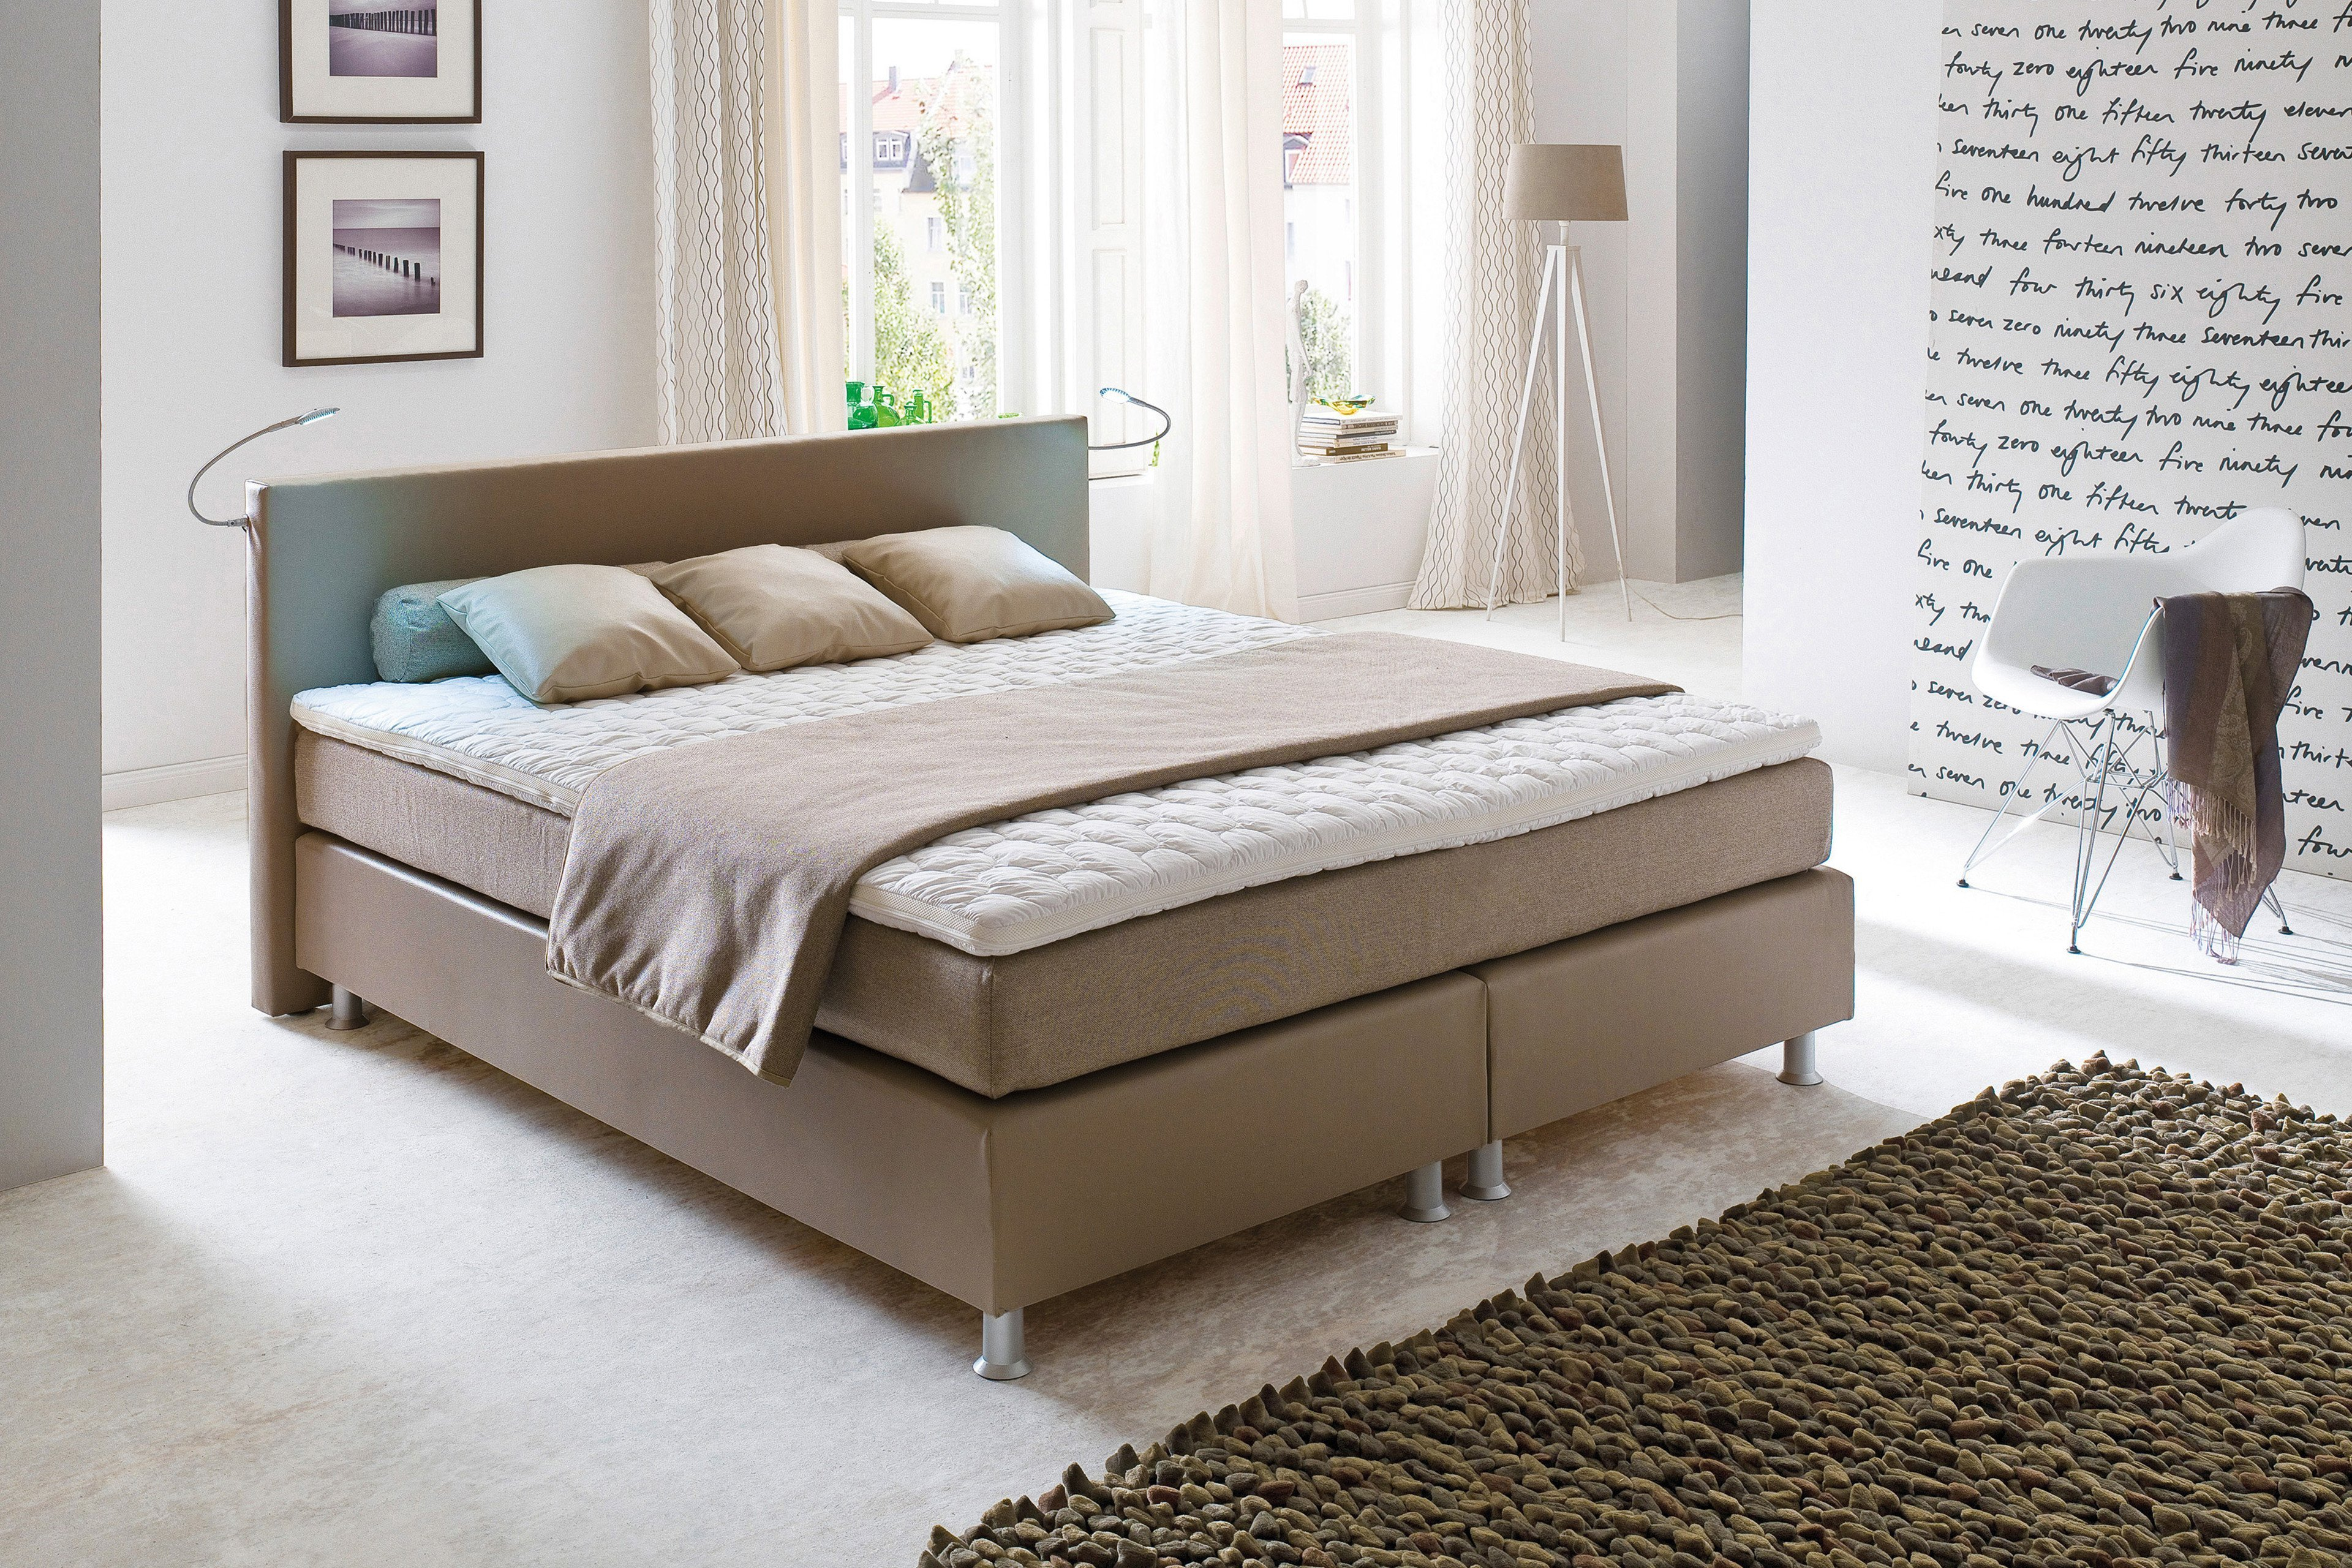 oschmann belcanto luxus boxspringbett in kunstleder beige m bel letz ihr online shop. Black Bedroom Furniture Sets. Home Design Ideas